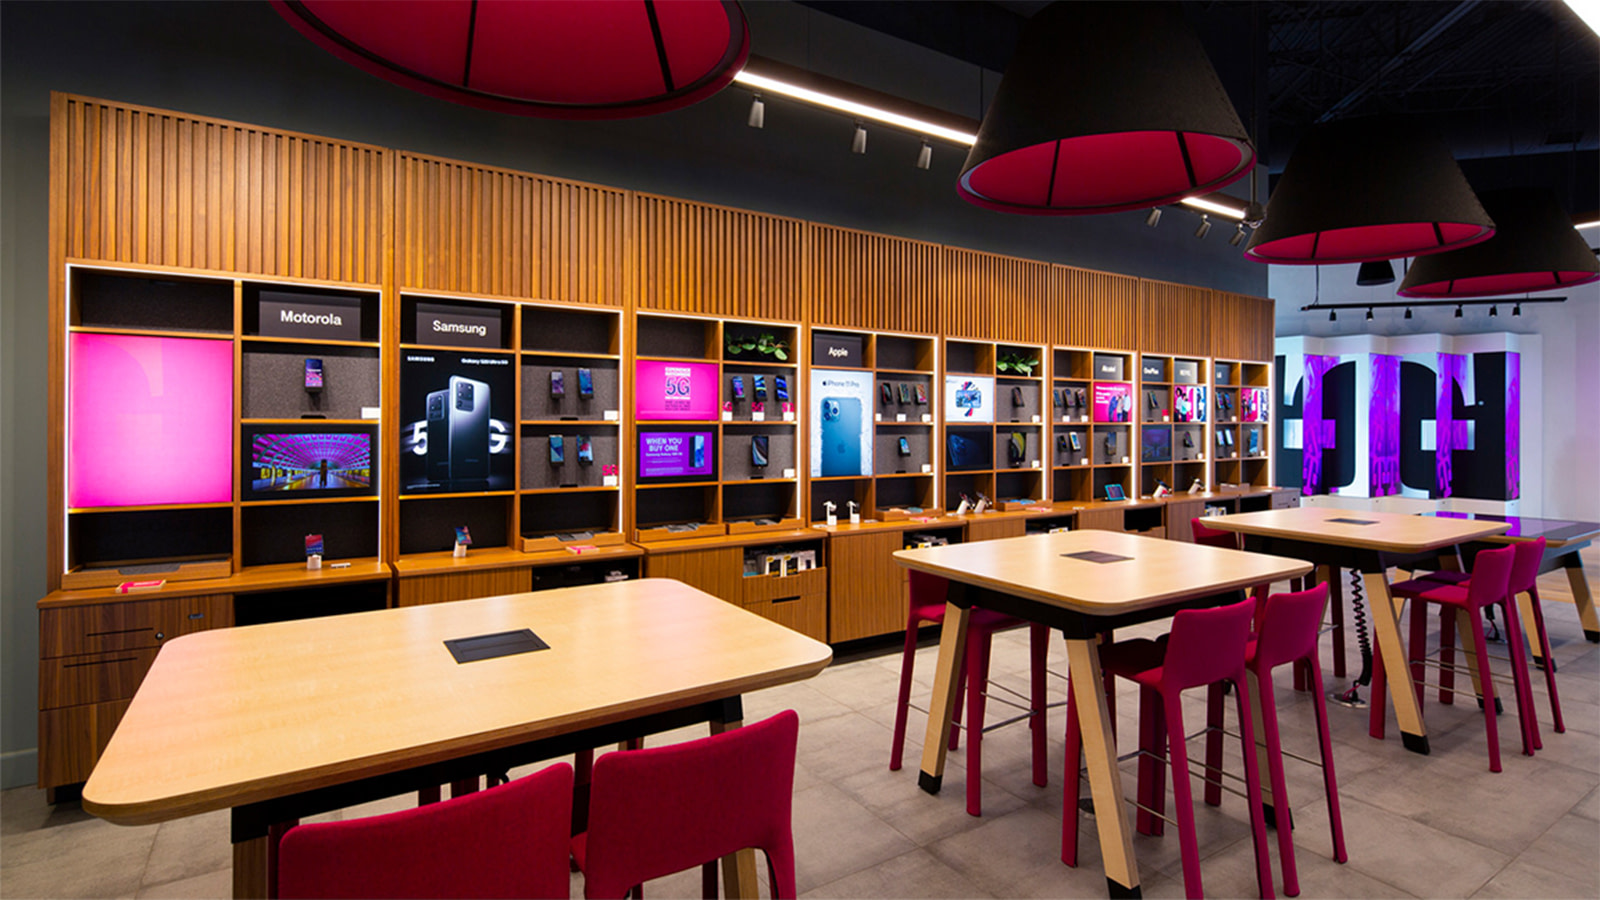 The retail floor of T-Mobile's Plano location.